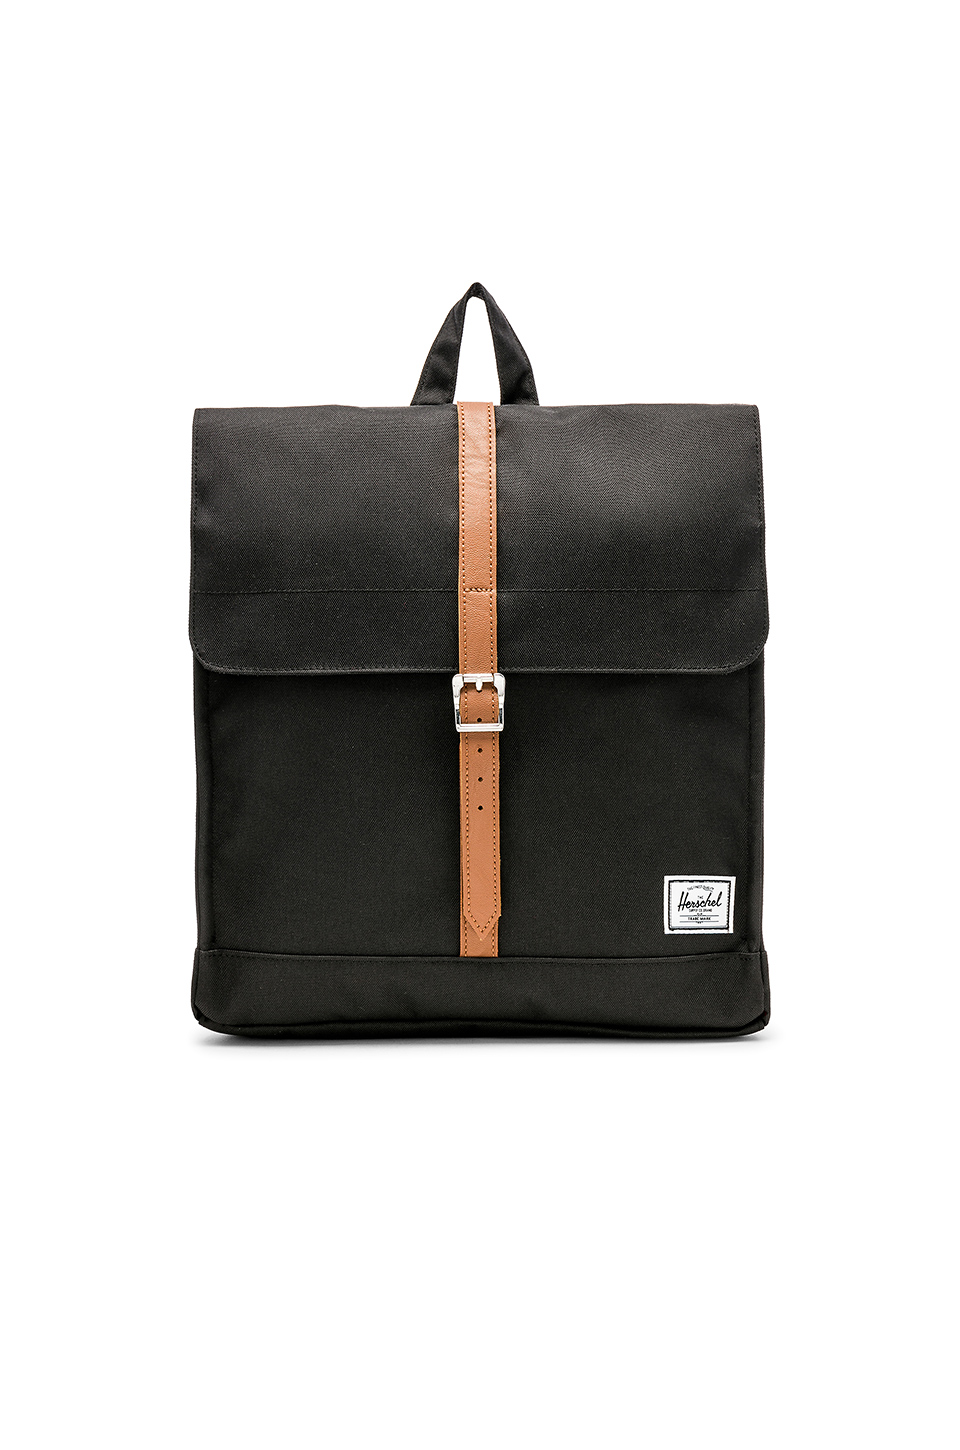 e83dfb0942 Buy Original Herschel Supply Co. City Backpack at Indonesia